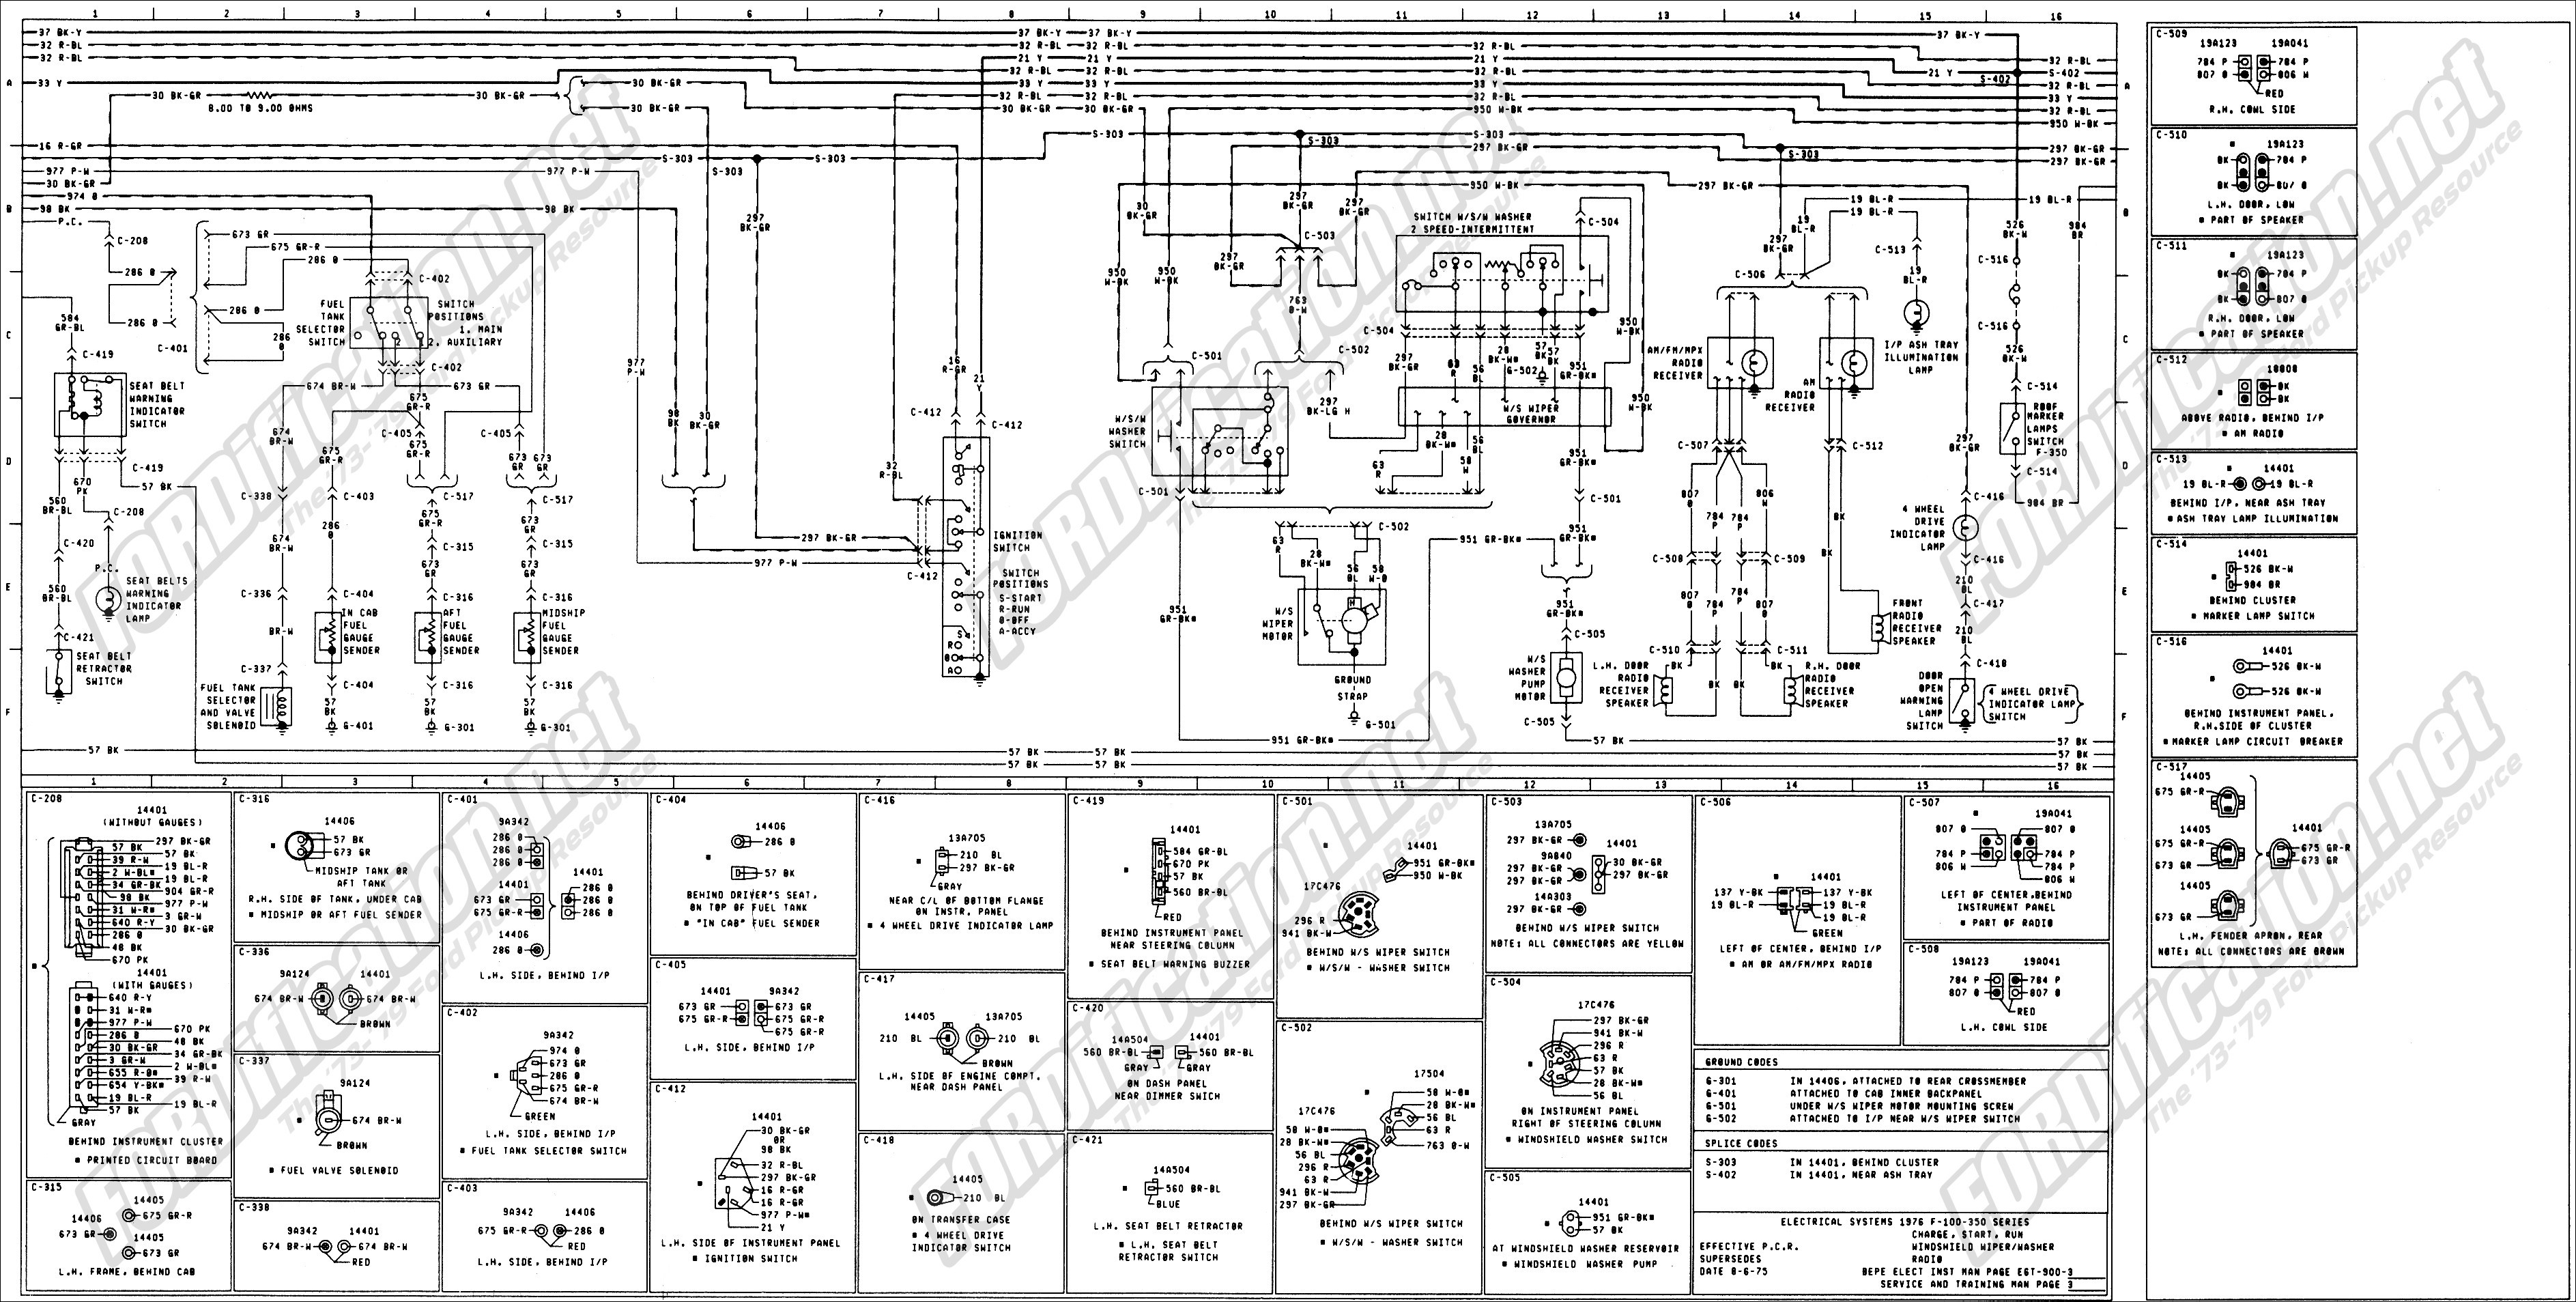 2003 ford f150 alternator wiring diagram pioneer eeq mosfet 50wx4 1977 library